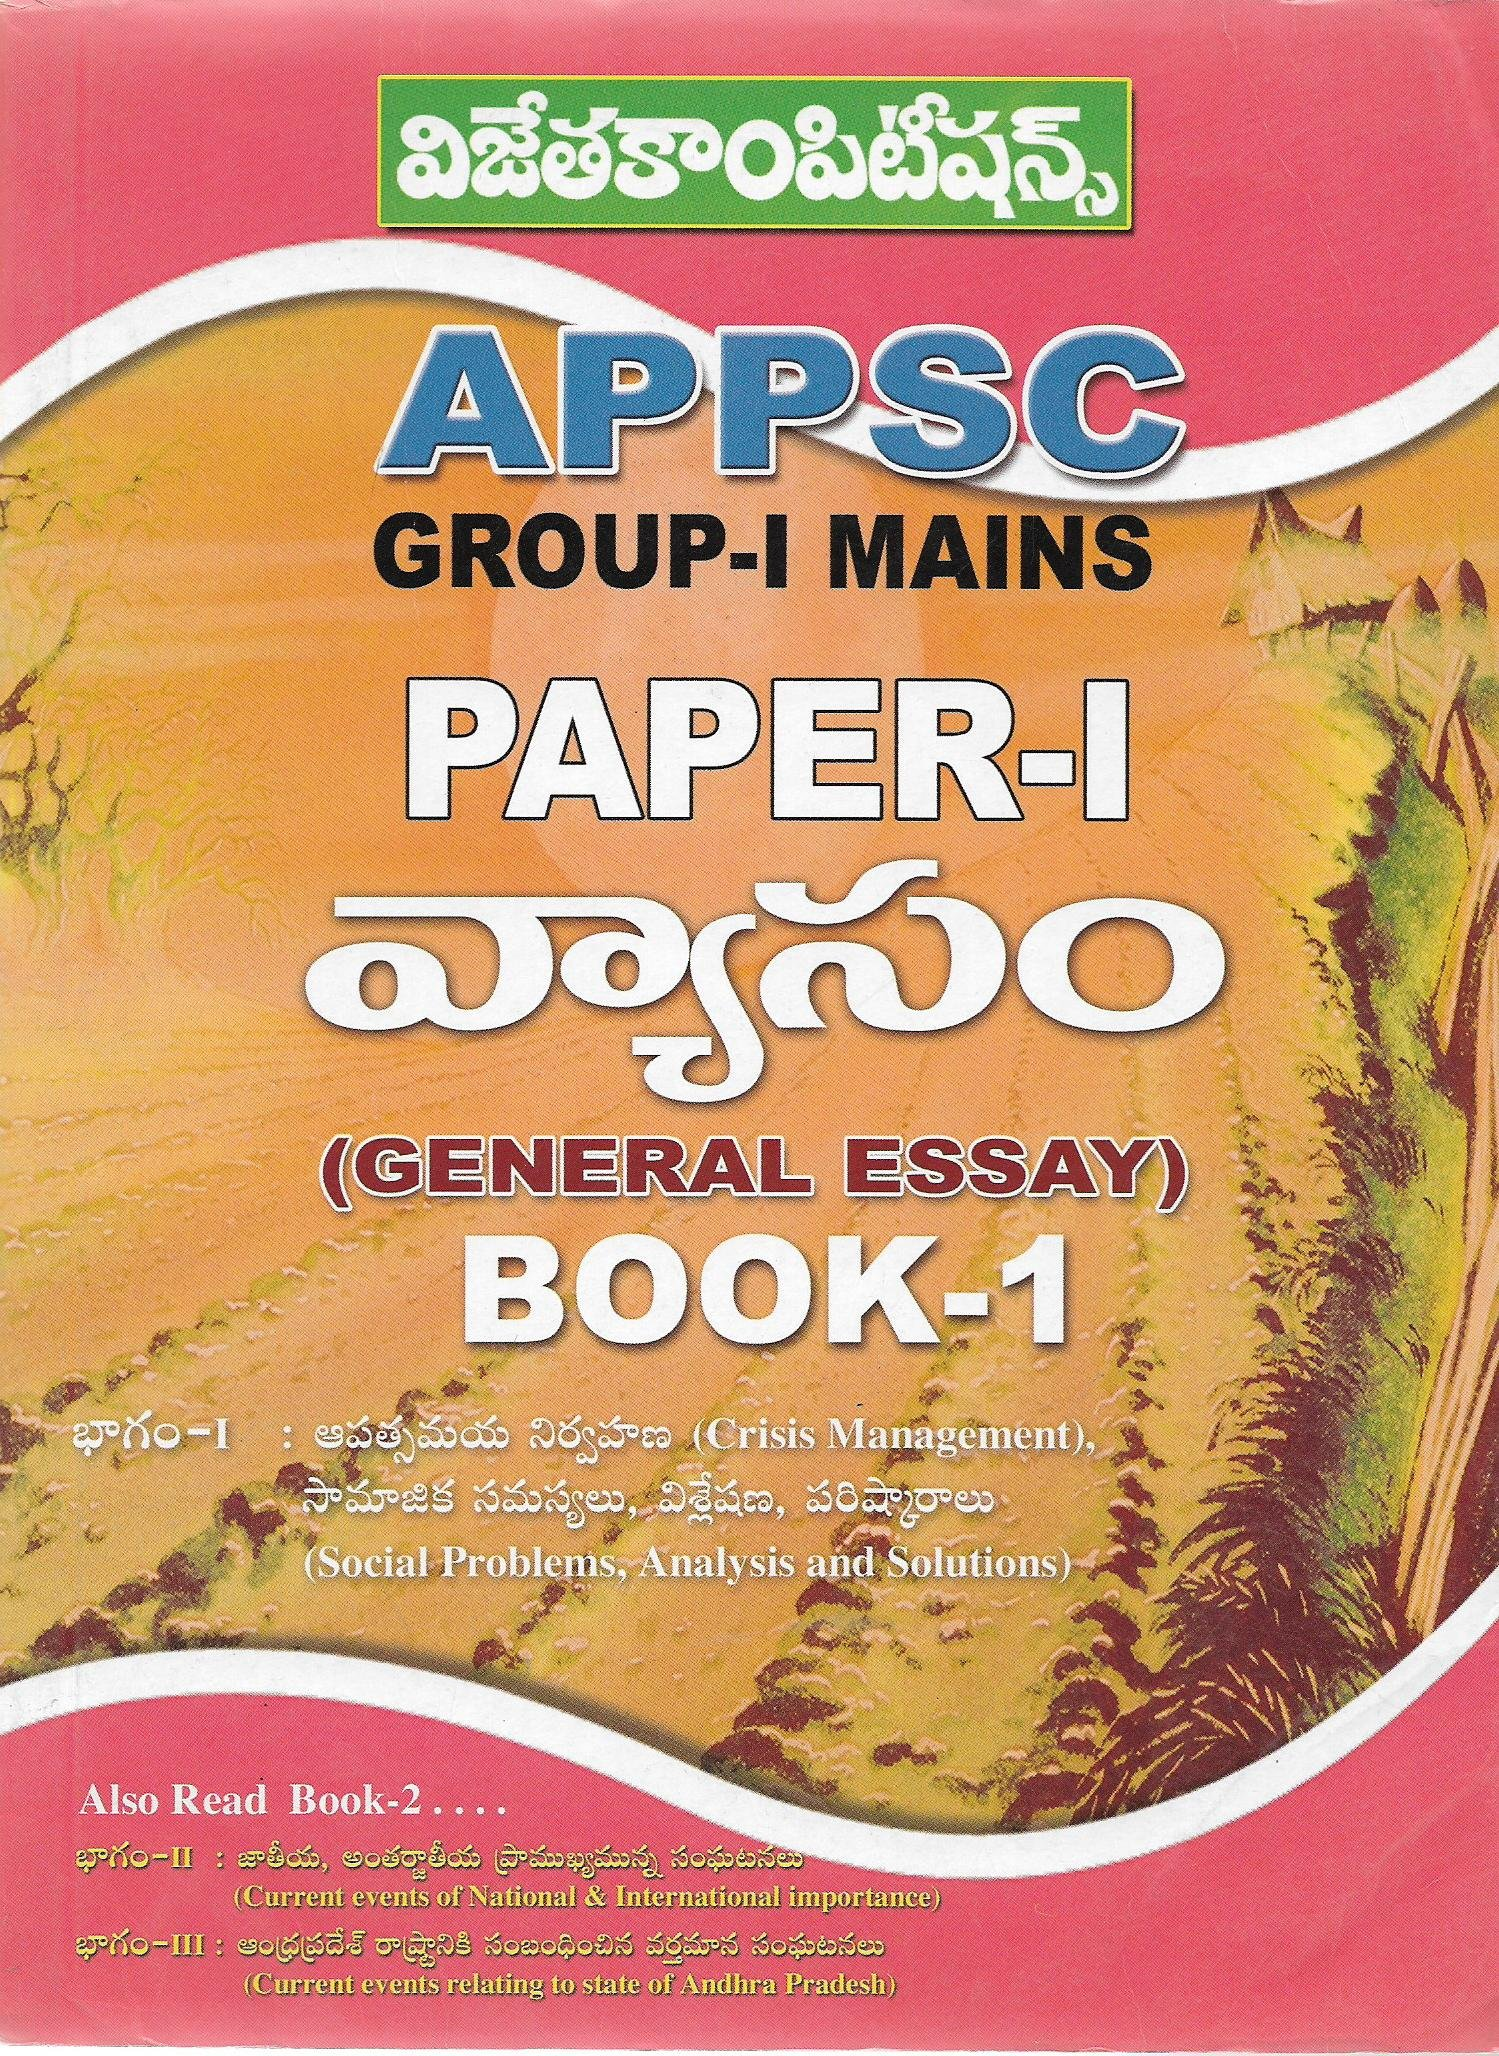 buy appsc group i mains paper 1 general essays telugu medium buy appsc group i mains paper 1 general essays telugu medium book online at low prices in appsc group i mains paper 1 general essays telugu